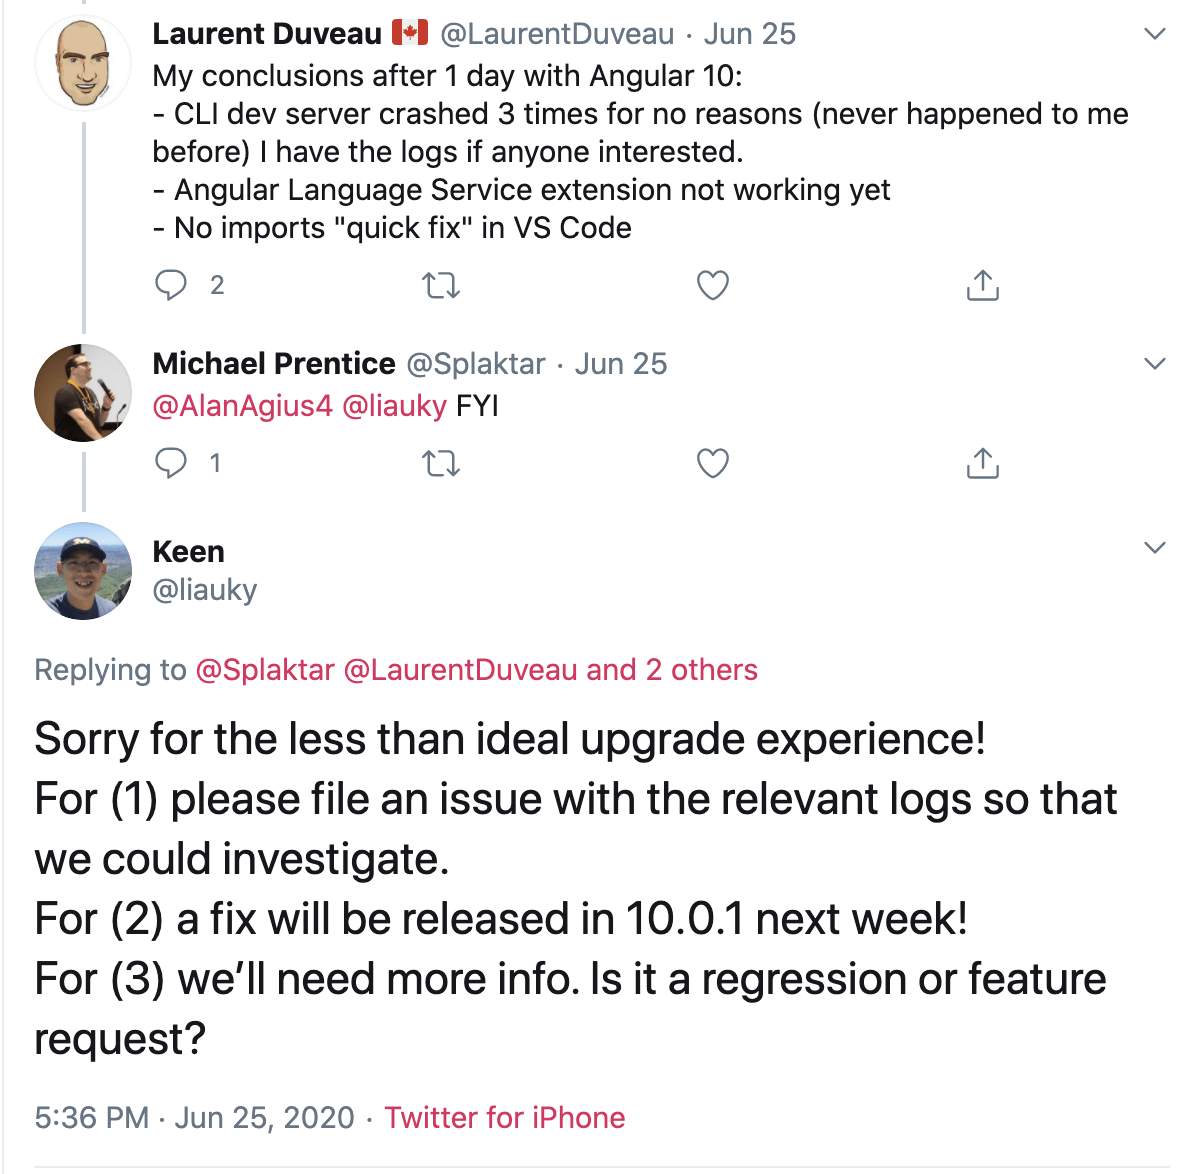 a tweet about submitting feedback